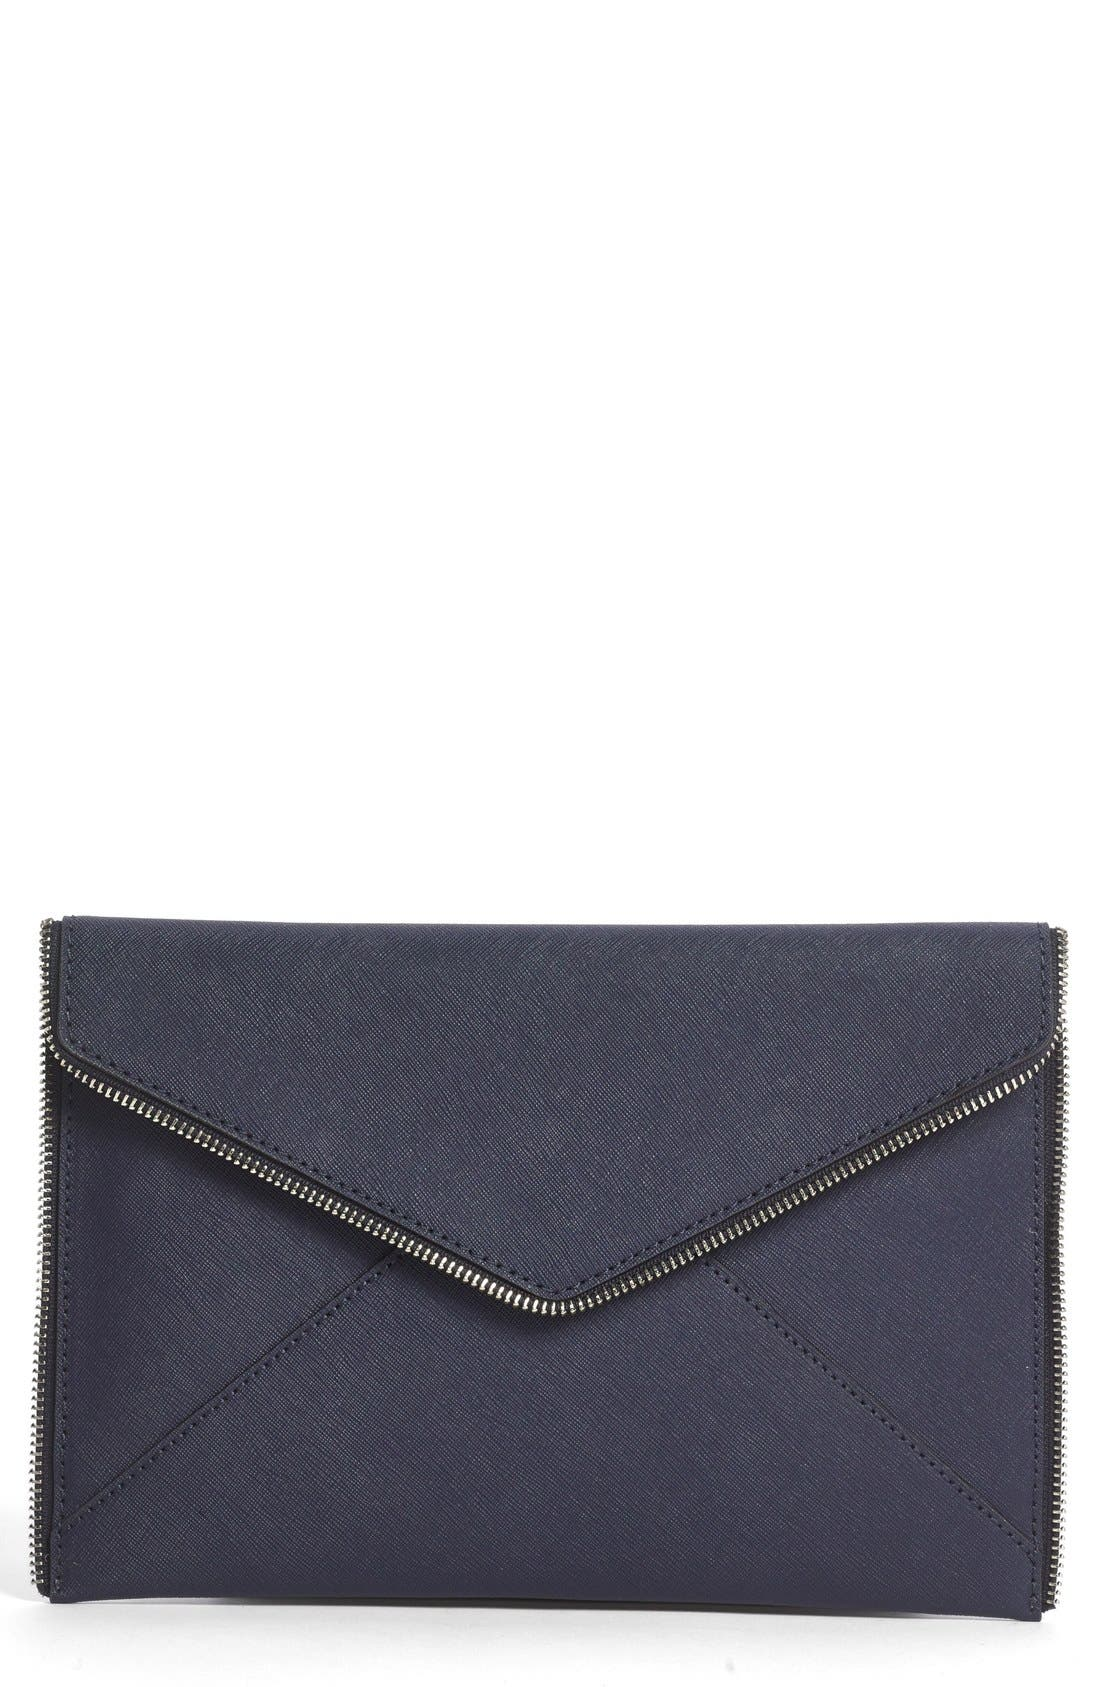 Alternate Image 1 Selected - Rebecca Minkoff 'Leo' Envelope Clutch